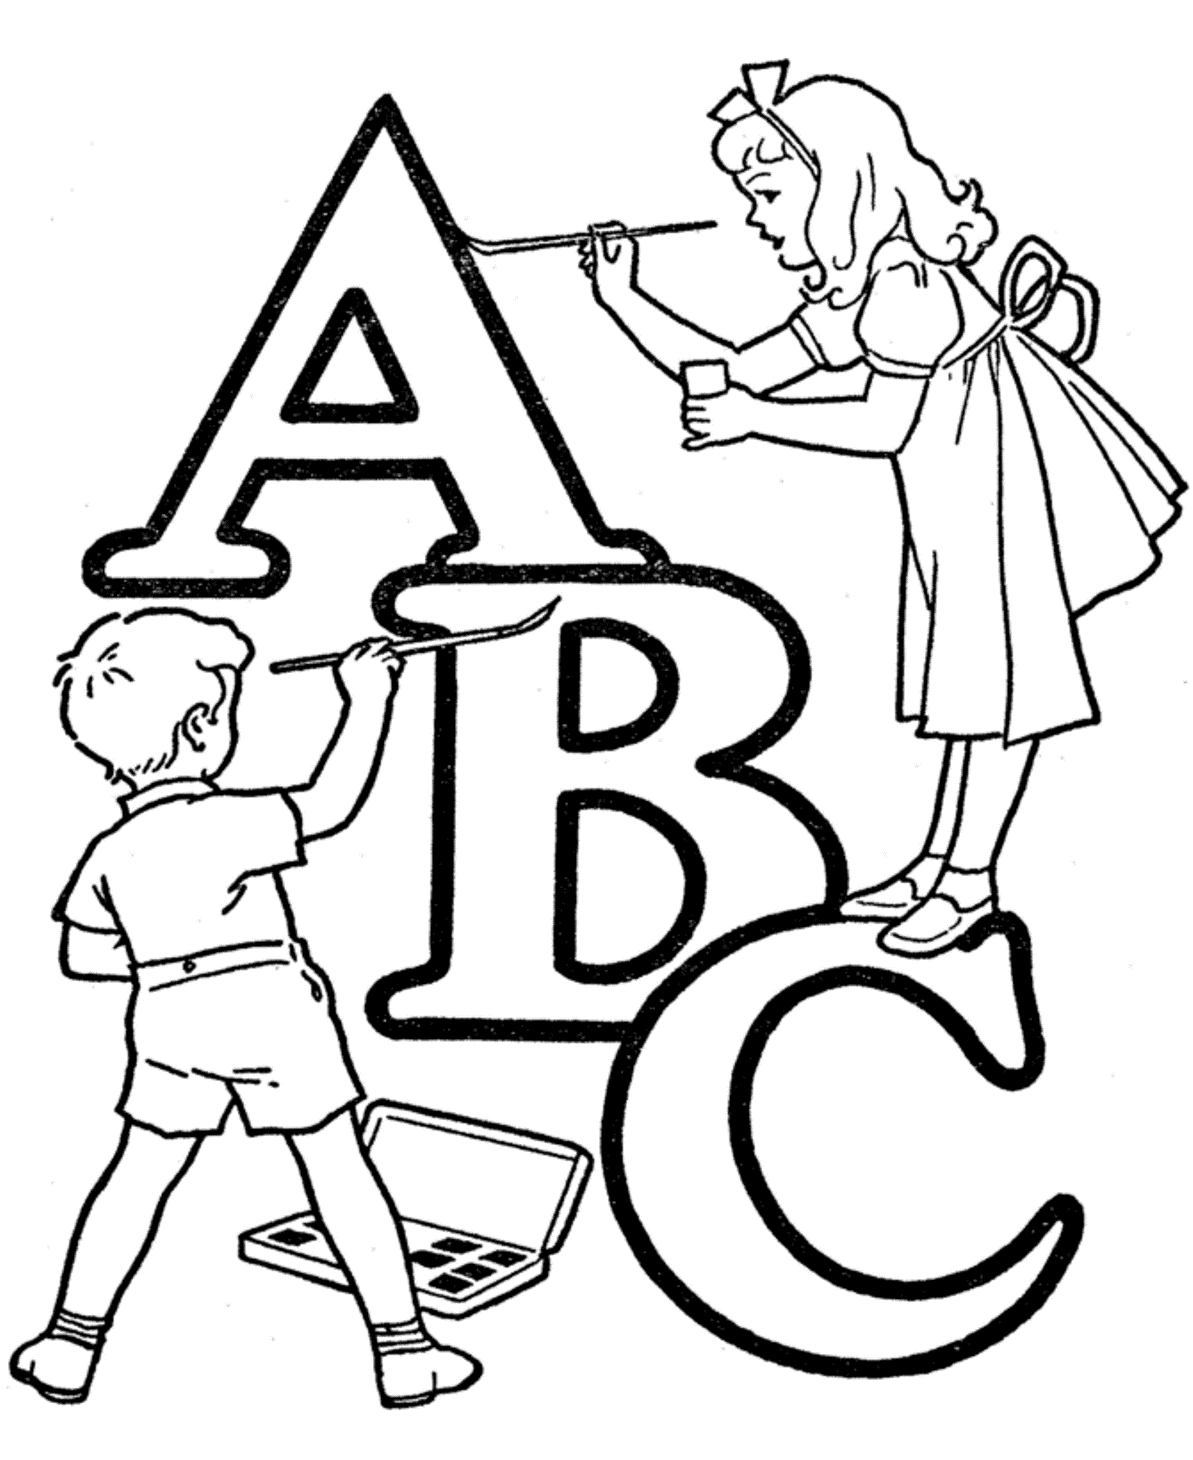 24 Abc Coloring Pages Compilation